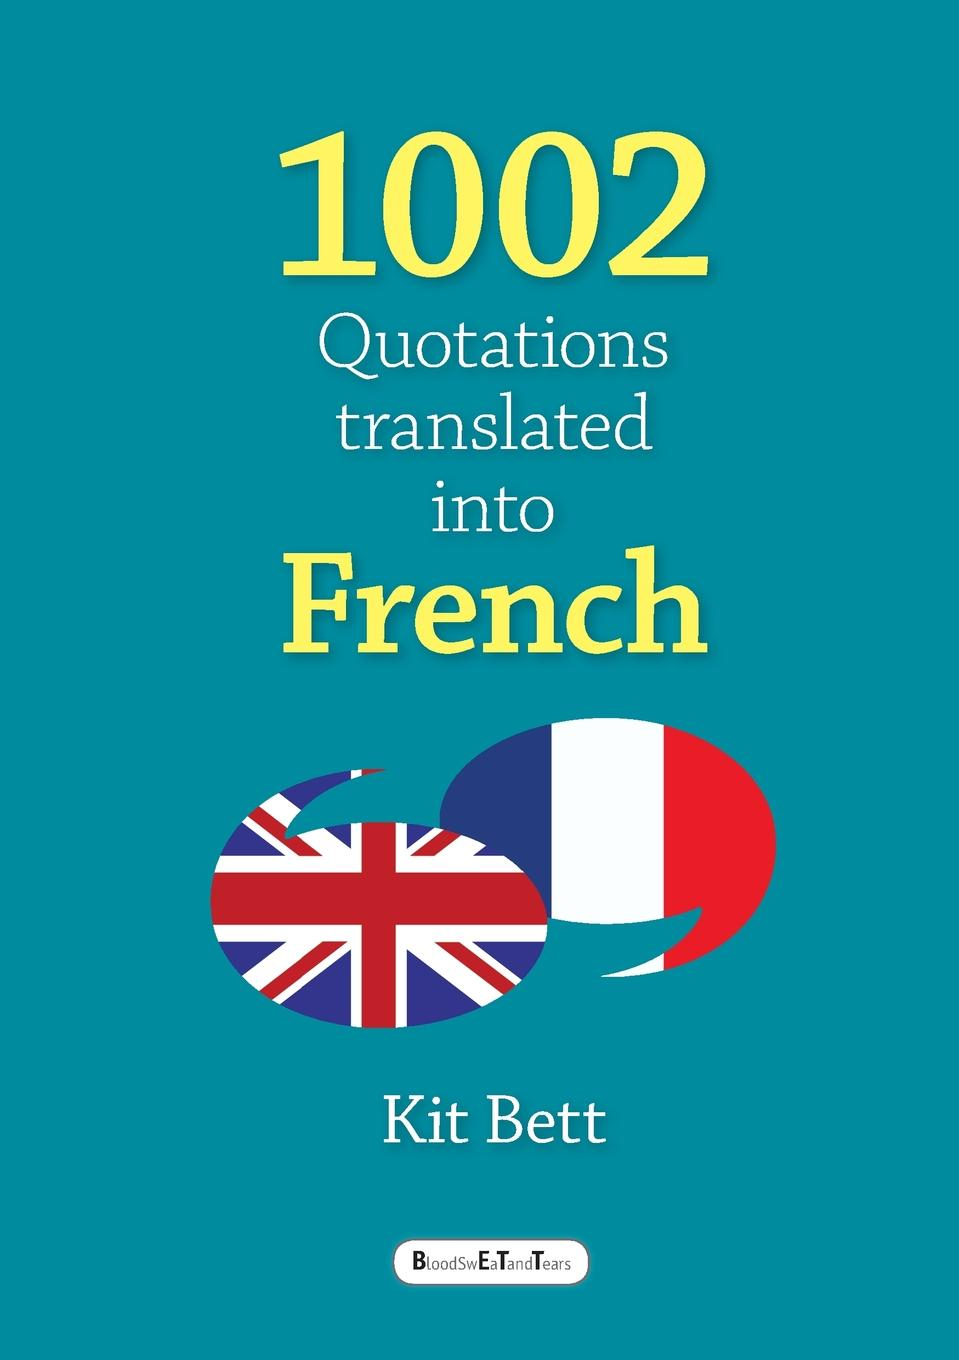 Kit Bett 1002 Quotations translated into French french in one click book with cd